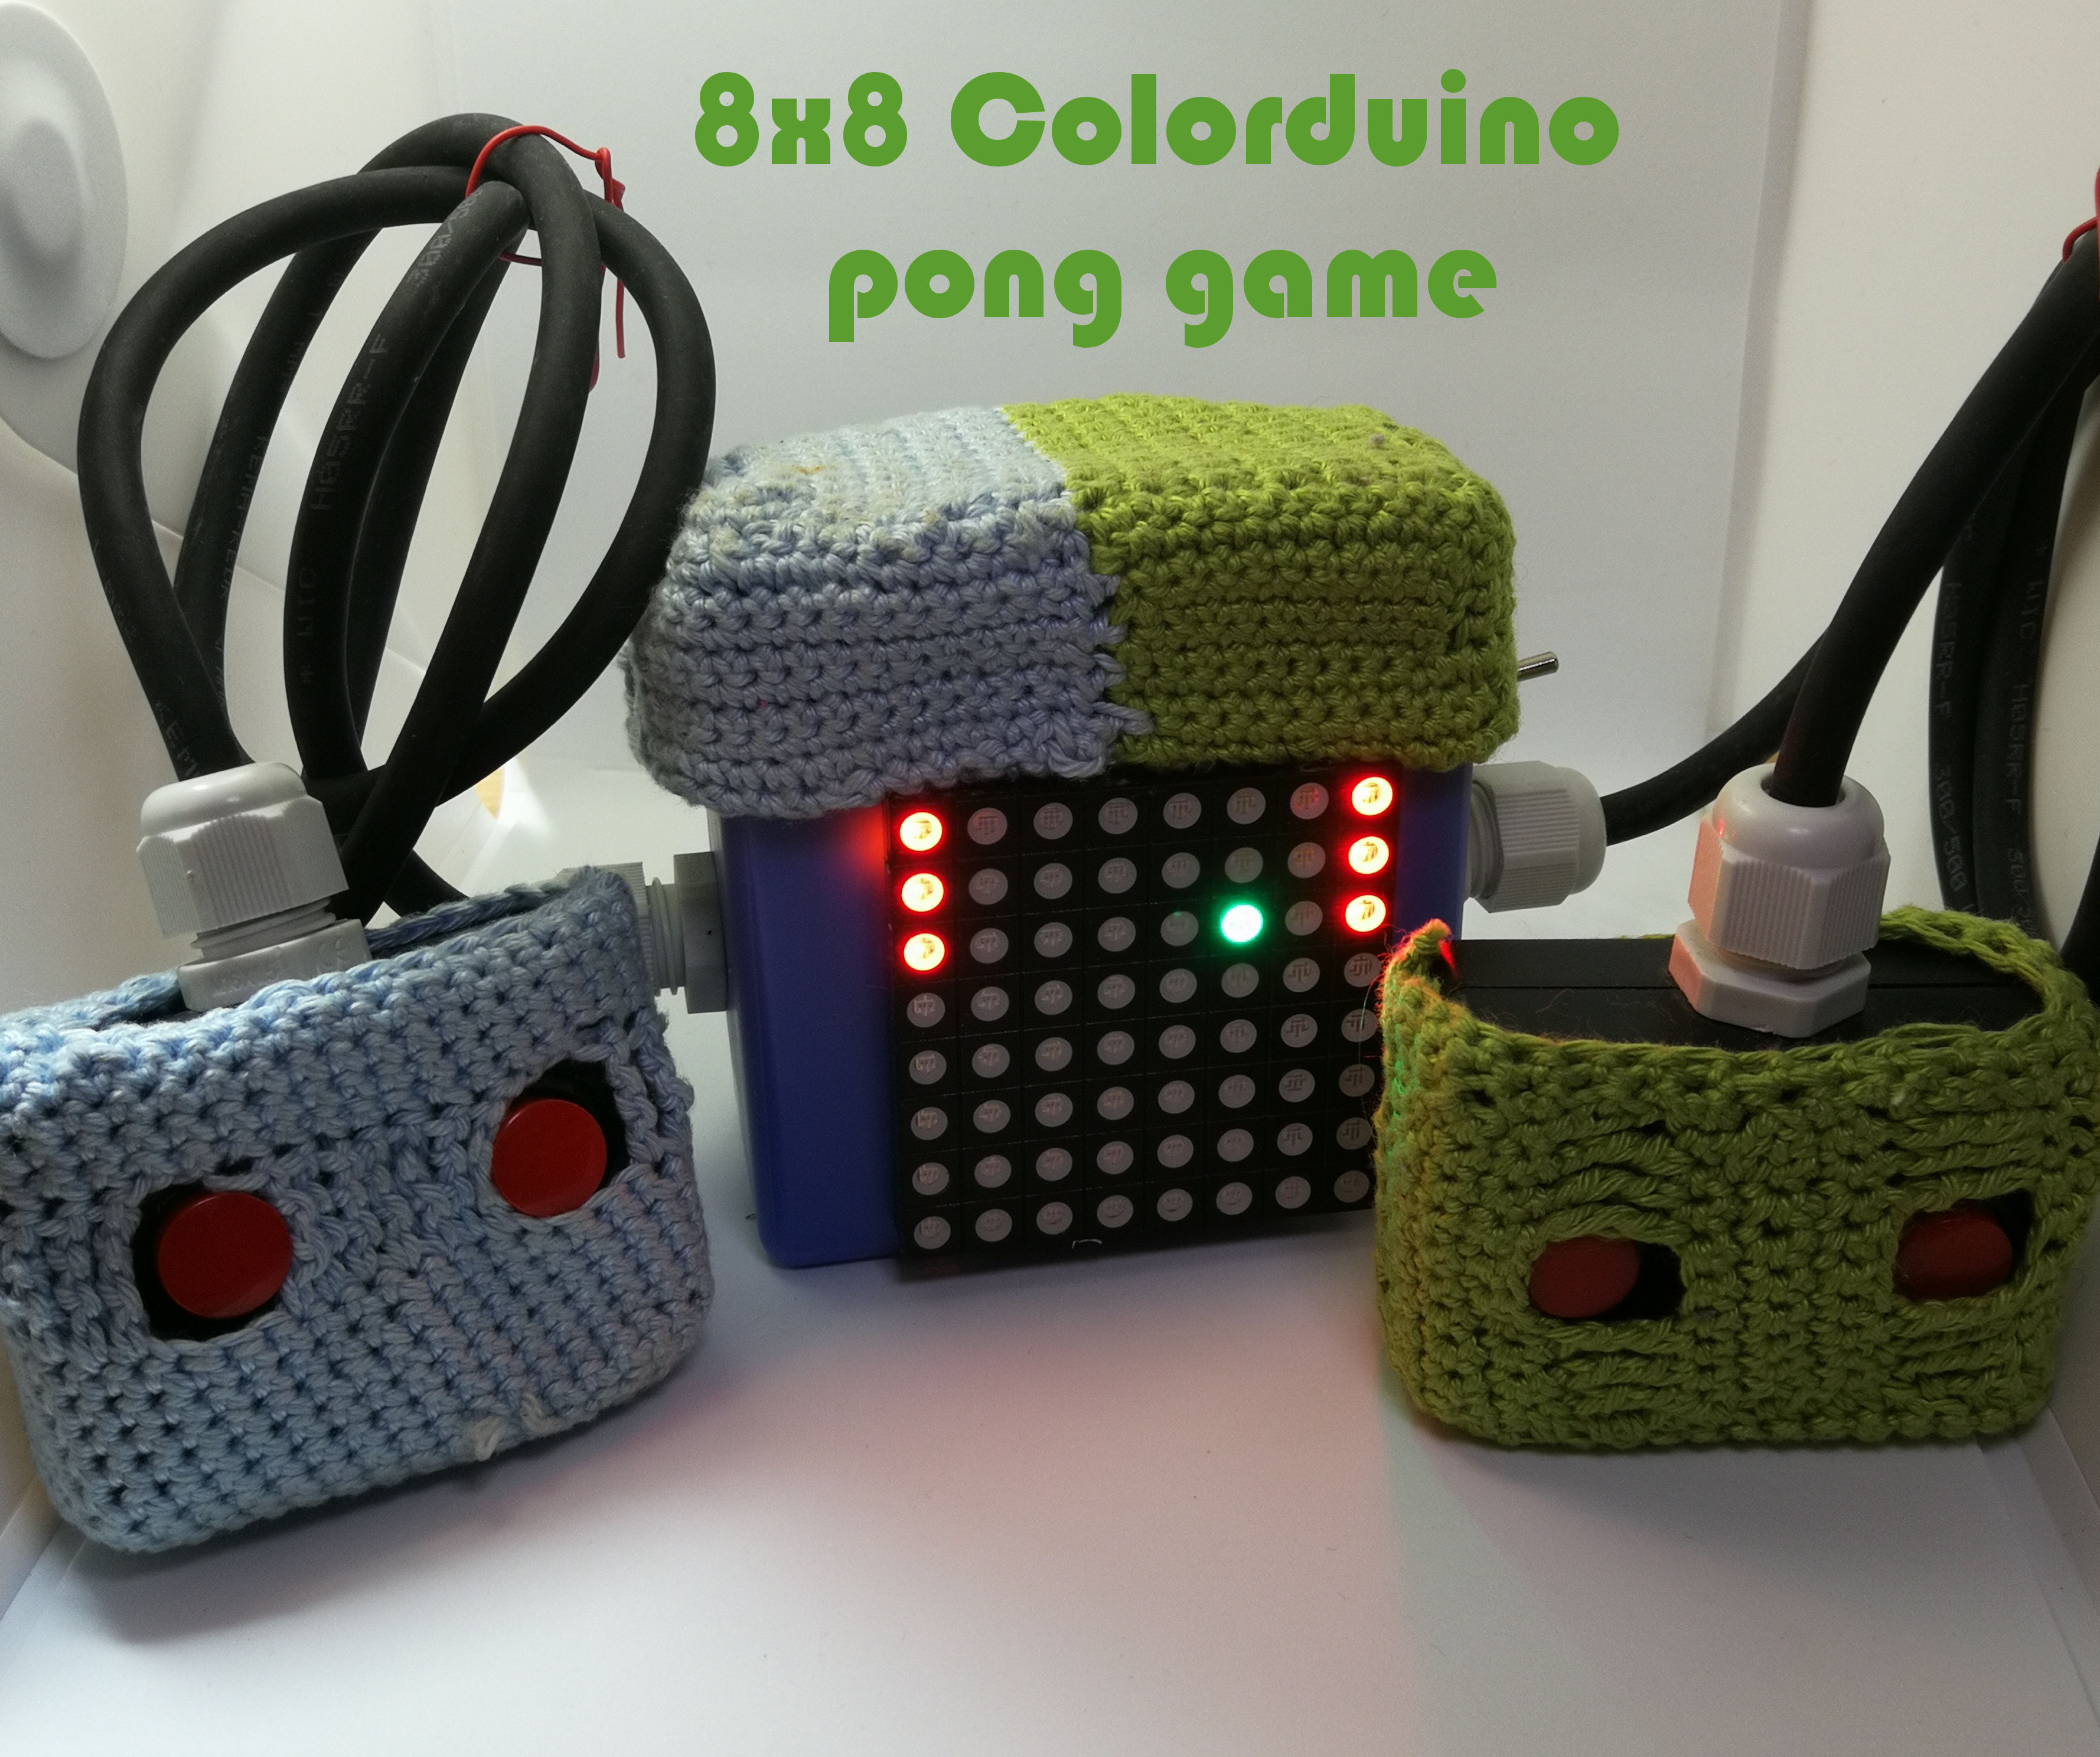 8x8 Colorduino Pong Game